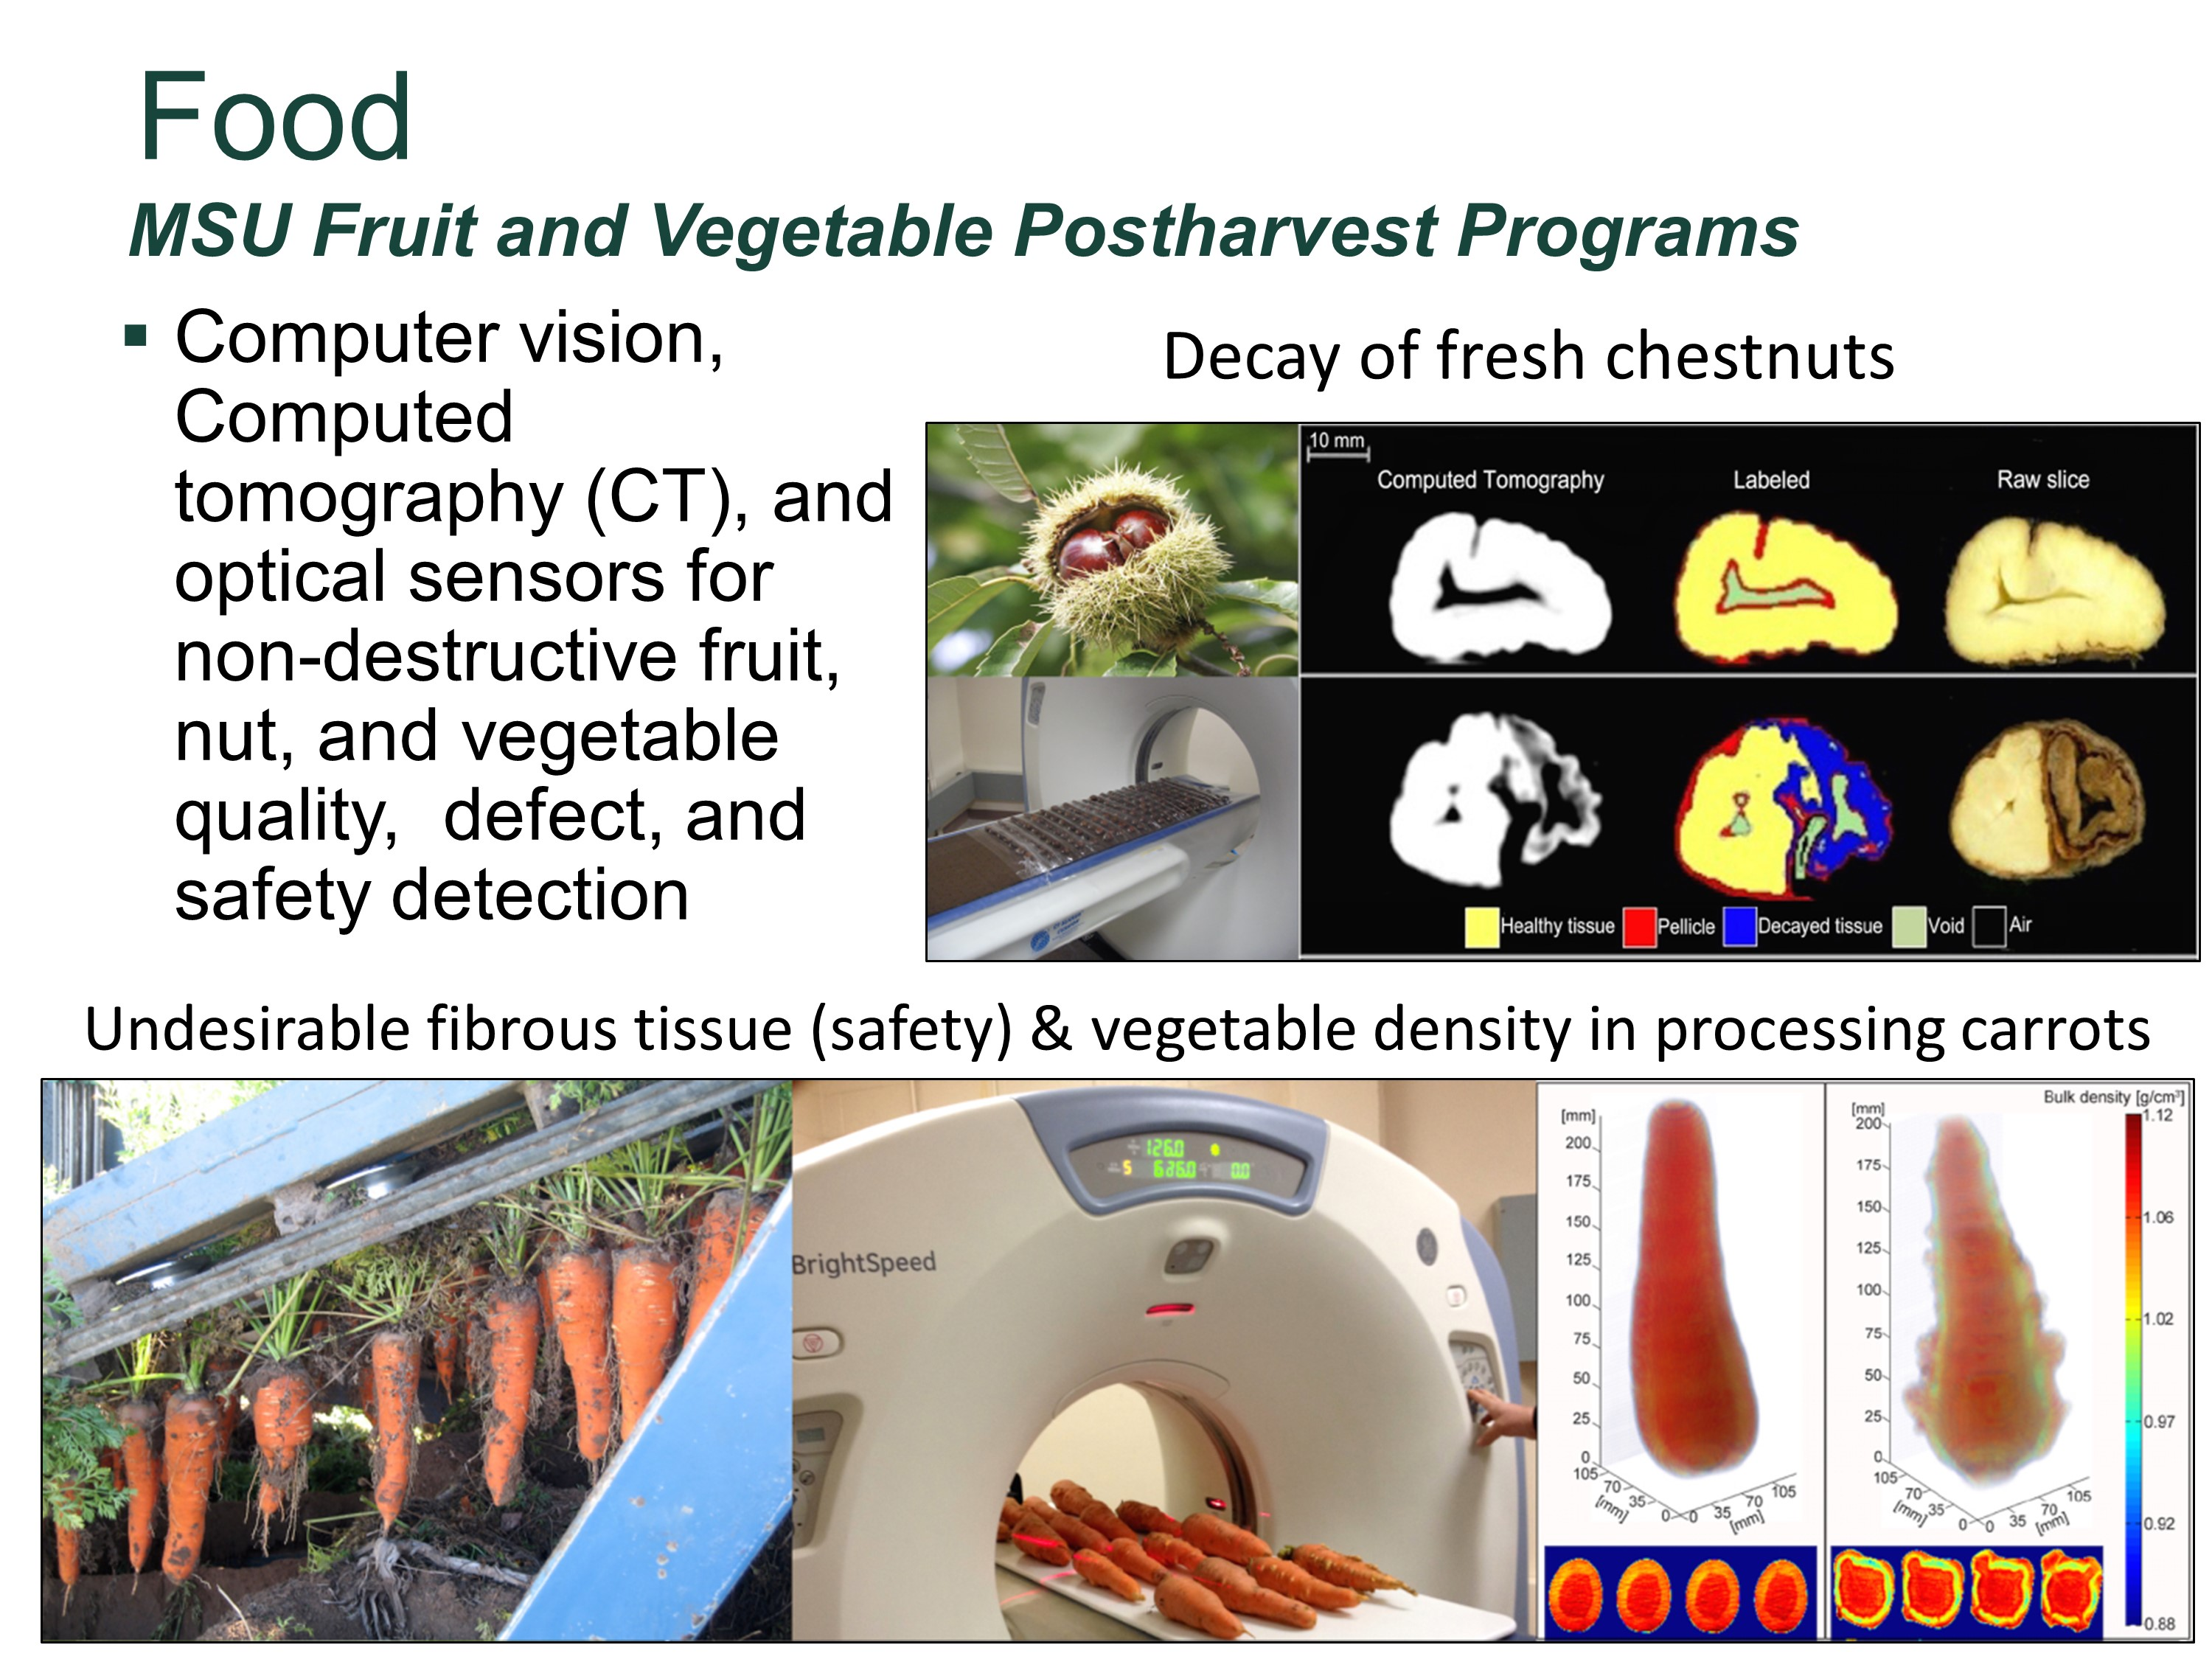 Photo of computer vision, computed tomography (CT), and optical sensors for non-destructive fruit, nut, and vegetable quality,  defect, and safety detection